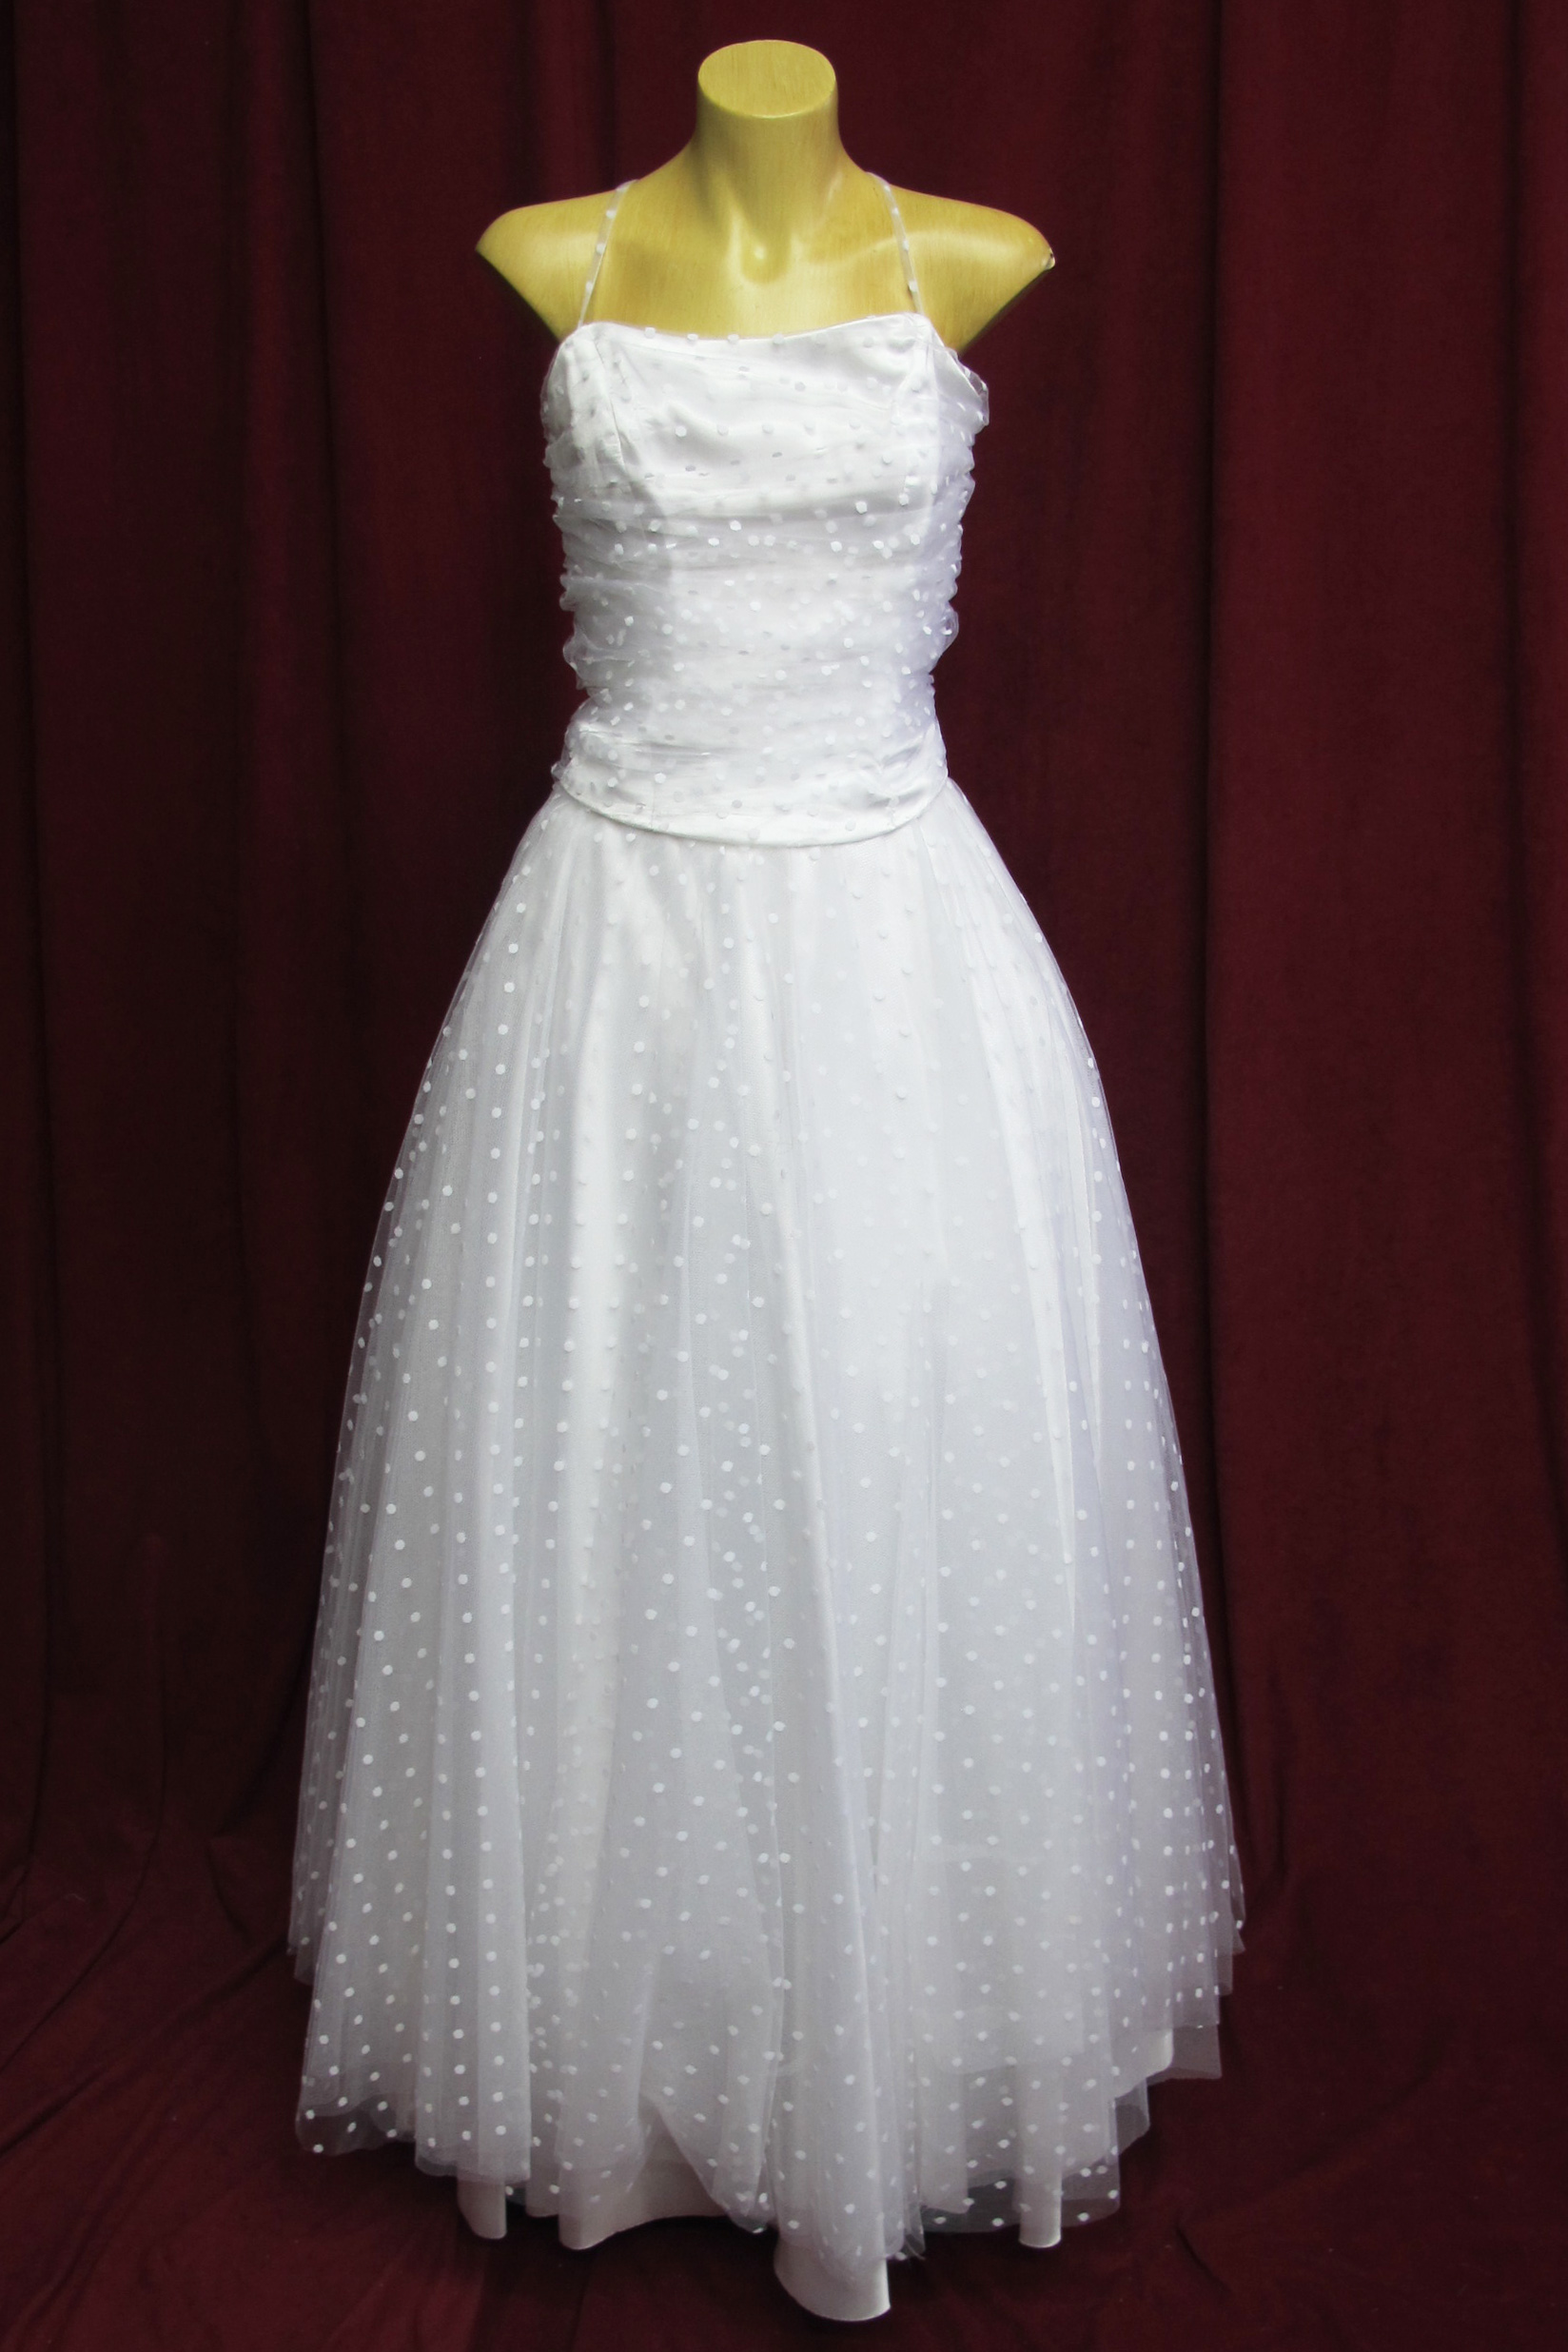 Wedding Dress 2pce White Tulle w Polkadots sz. 10 45320104